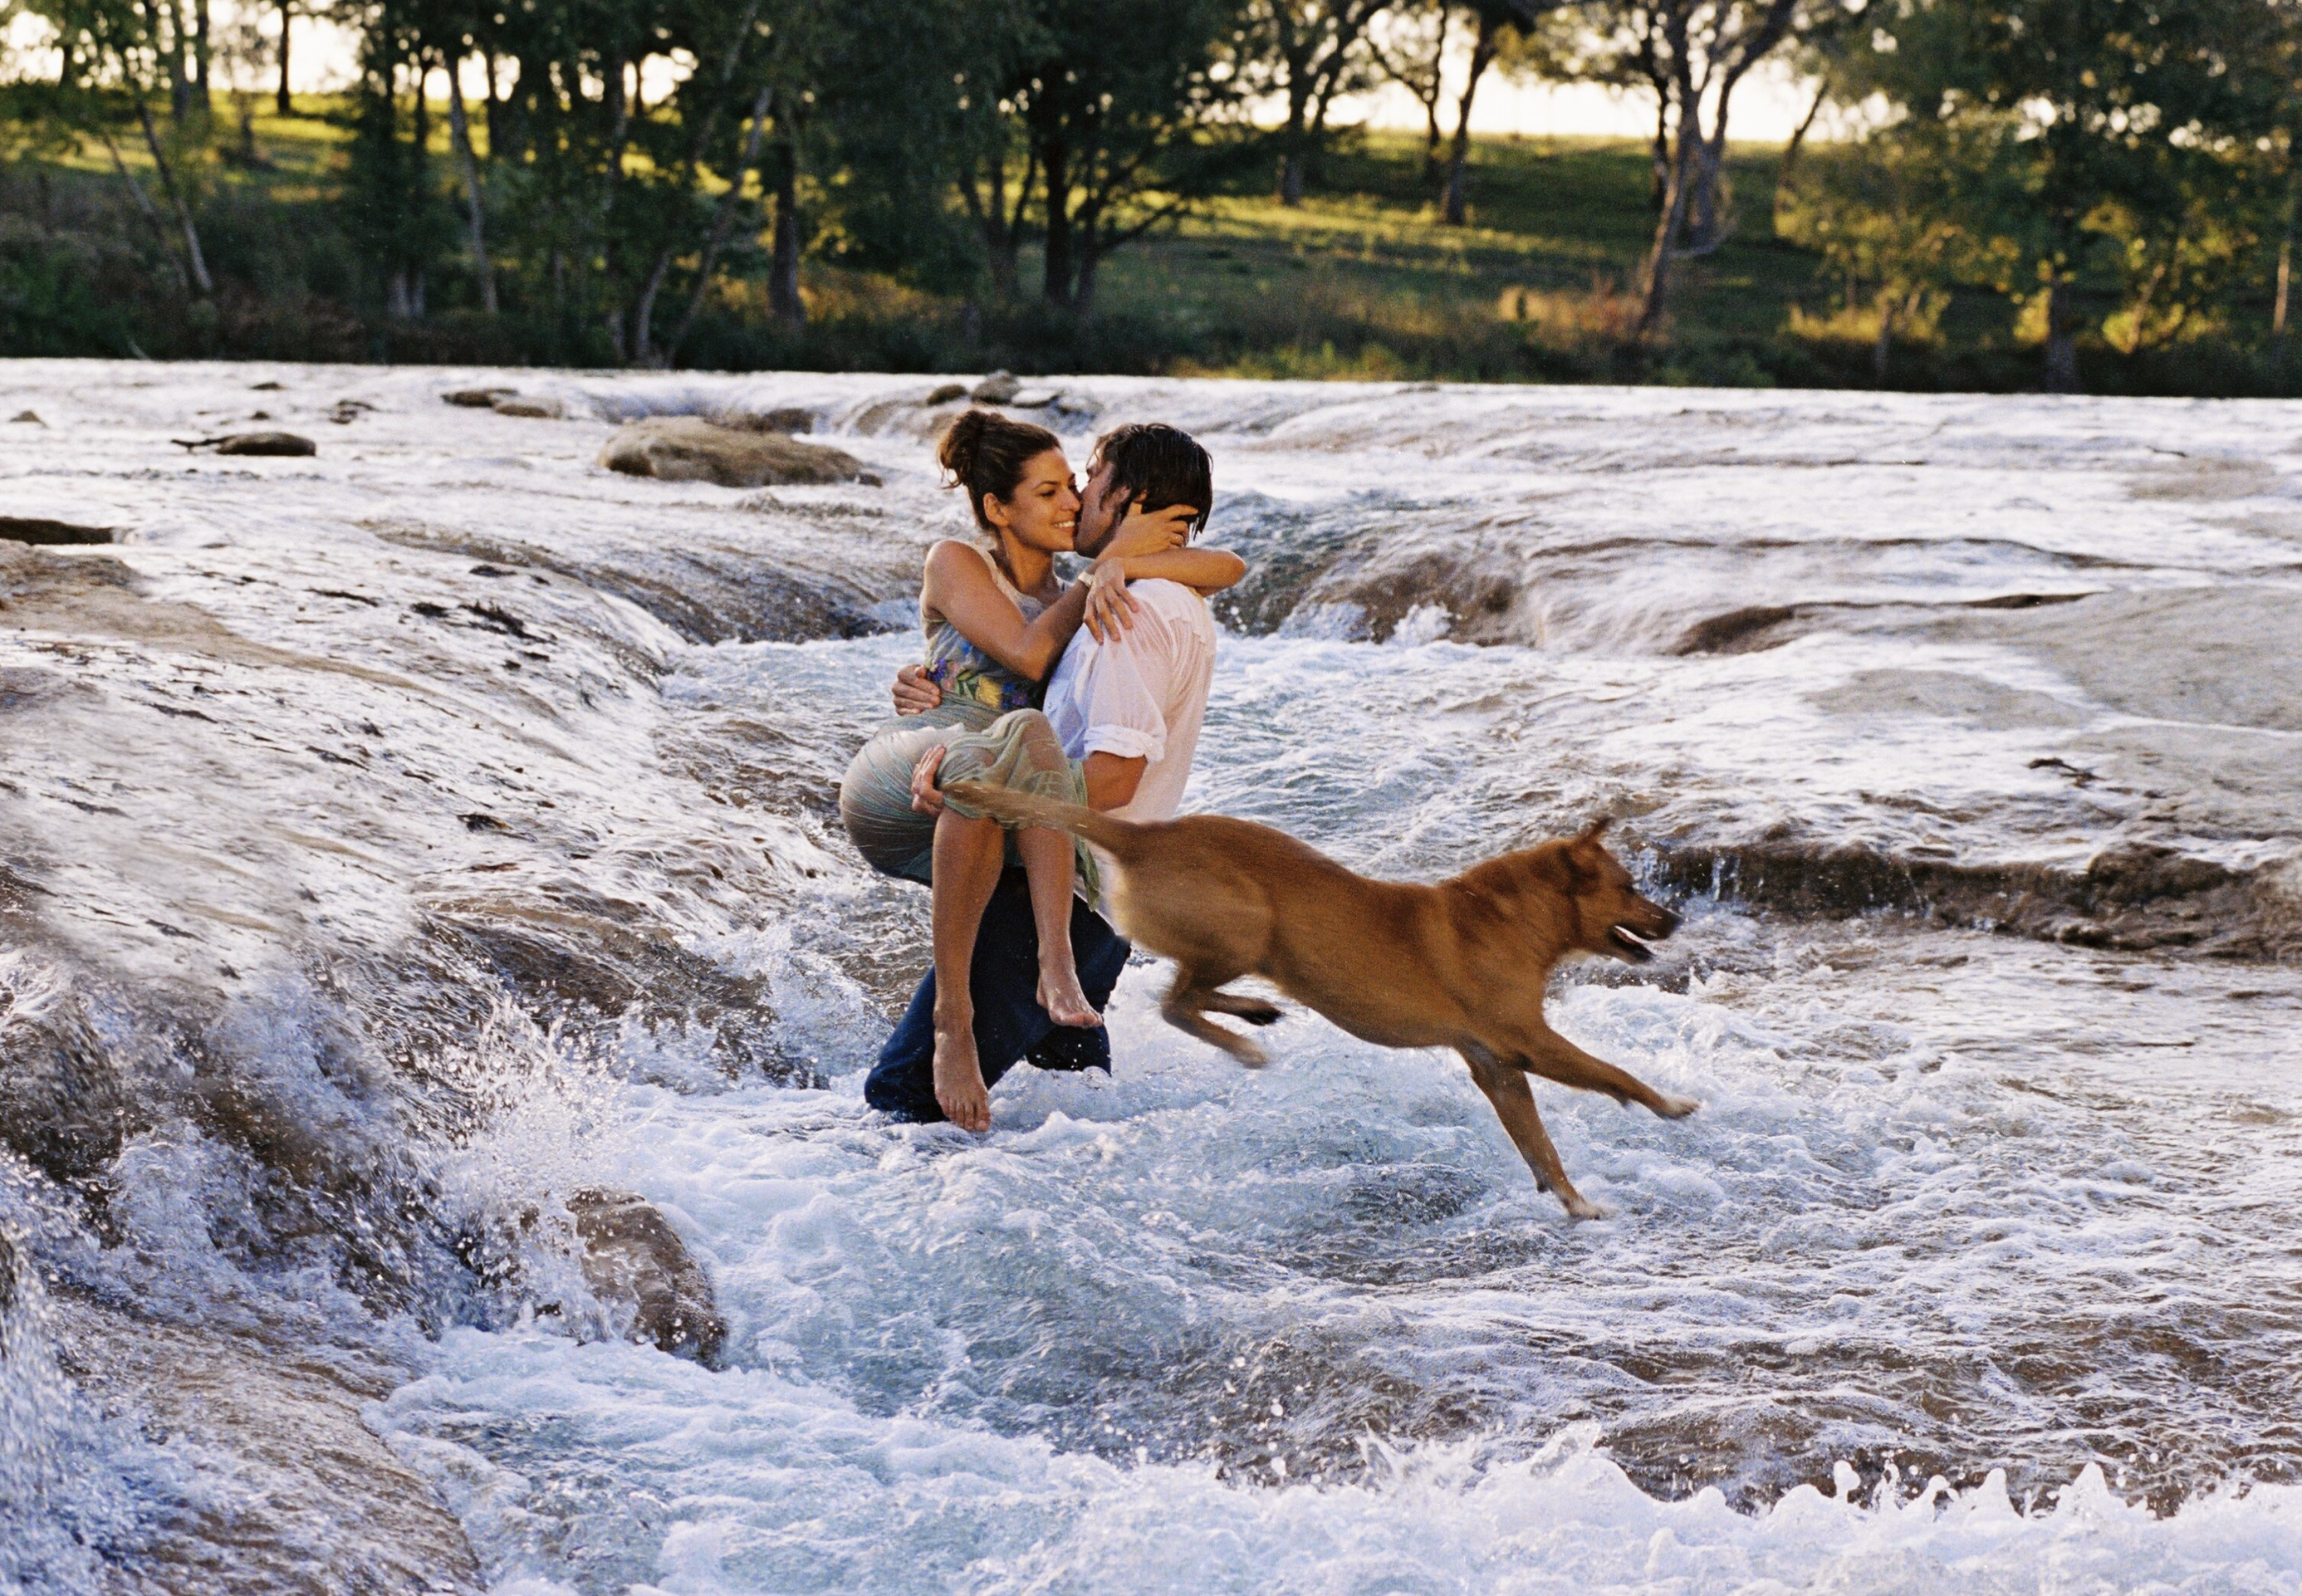 Luke Wilson and Eva Mendes, Wimberley, Texas, 2003